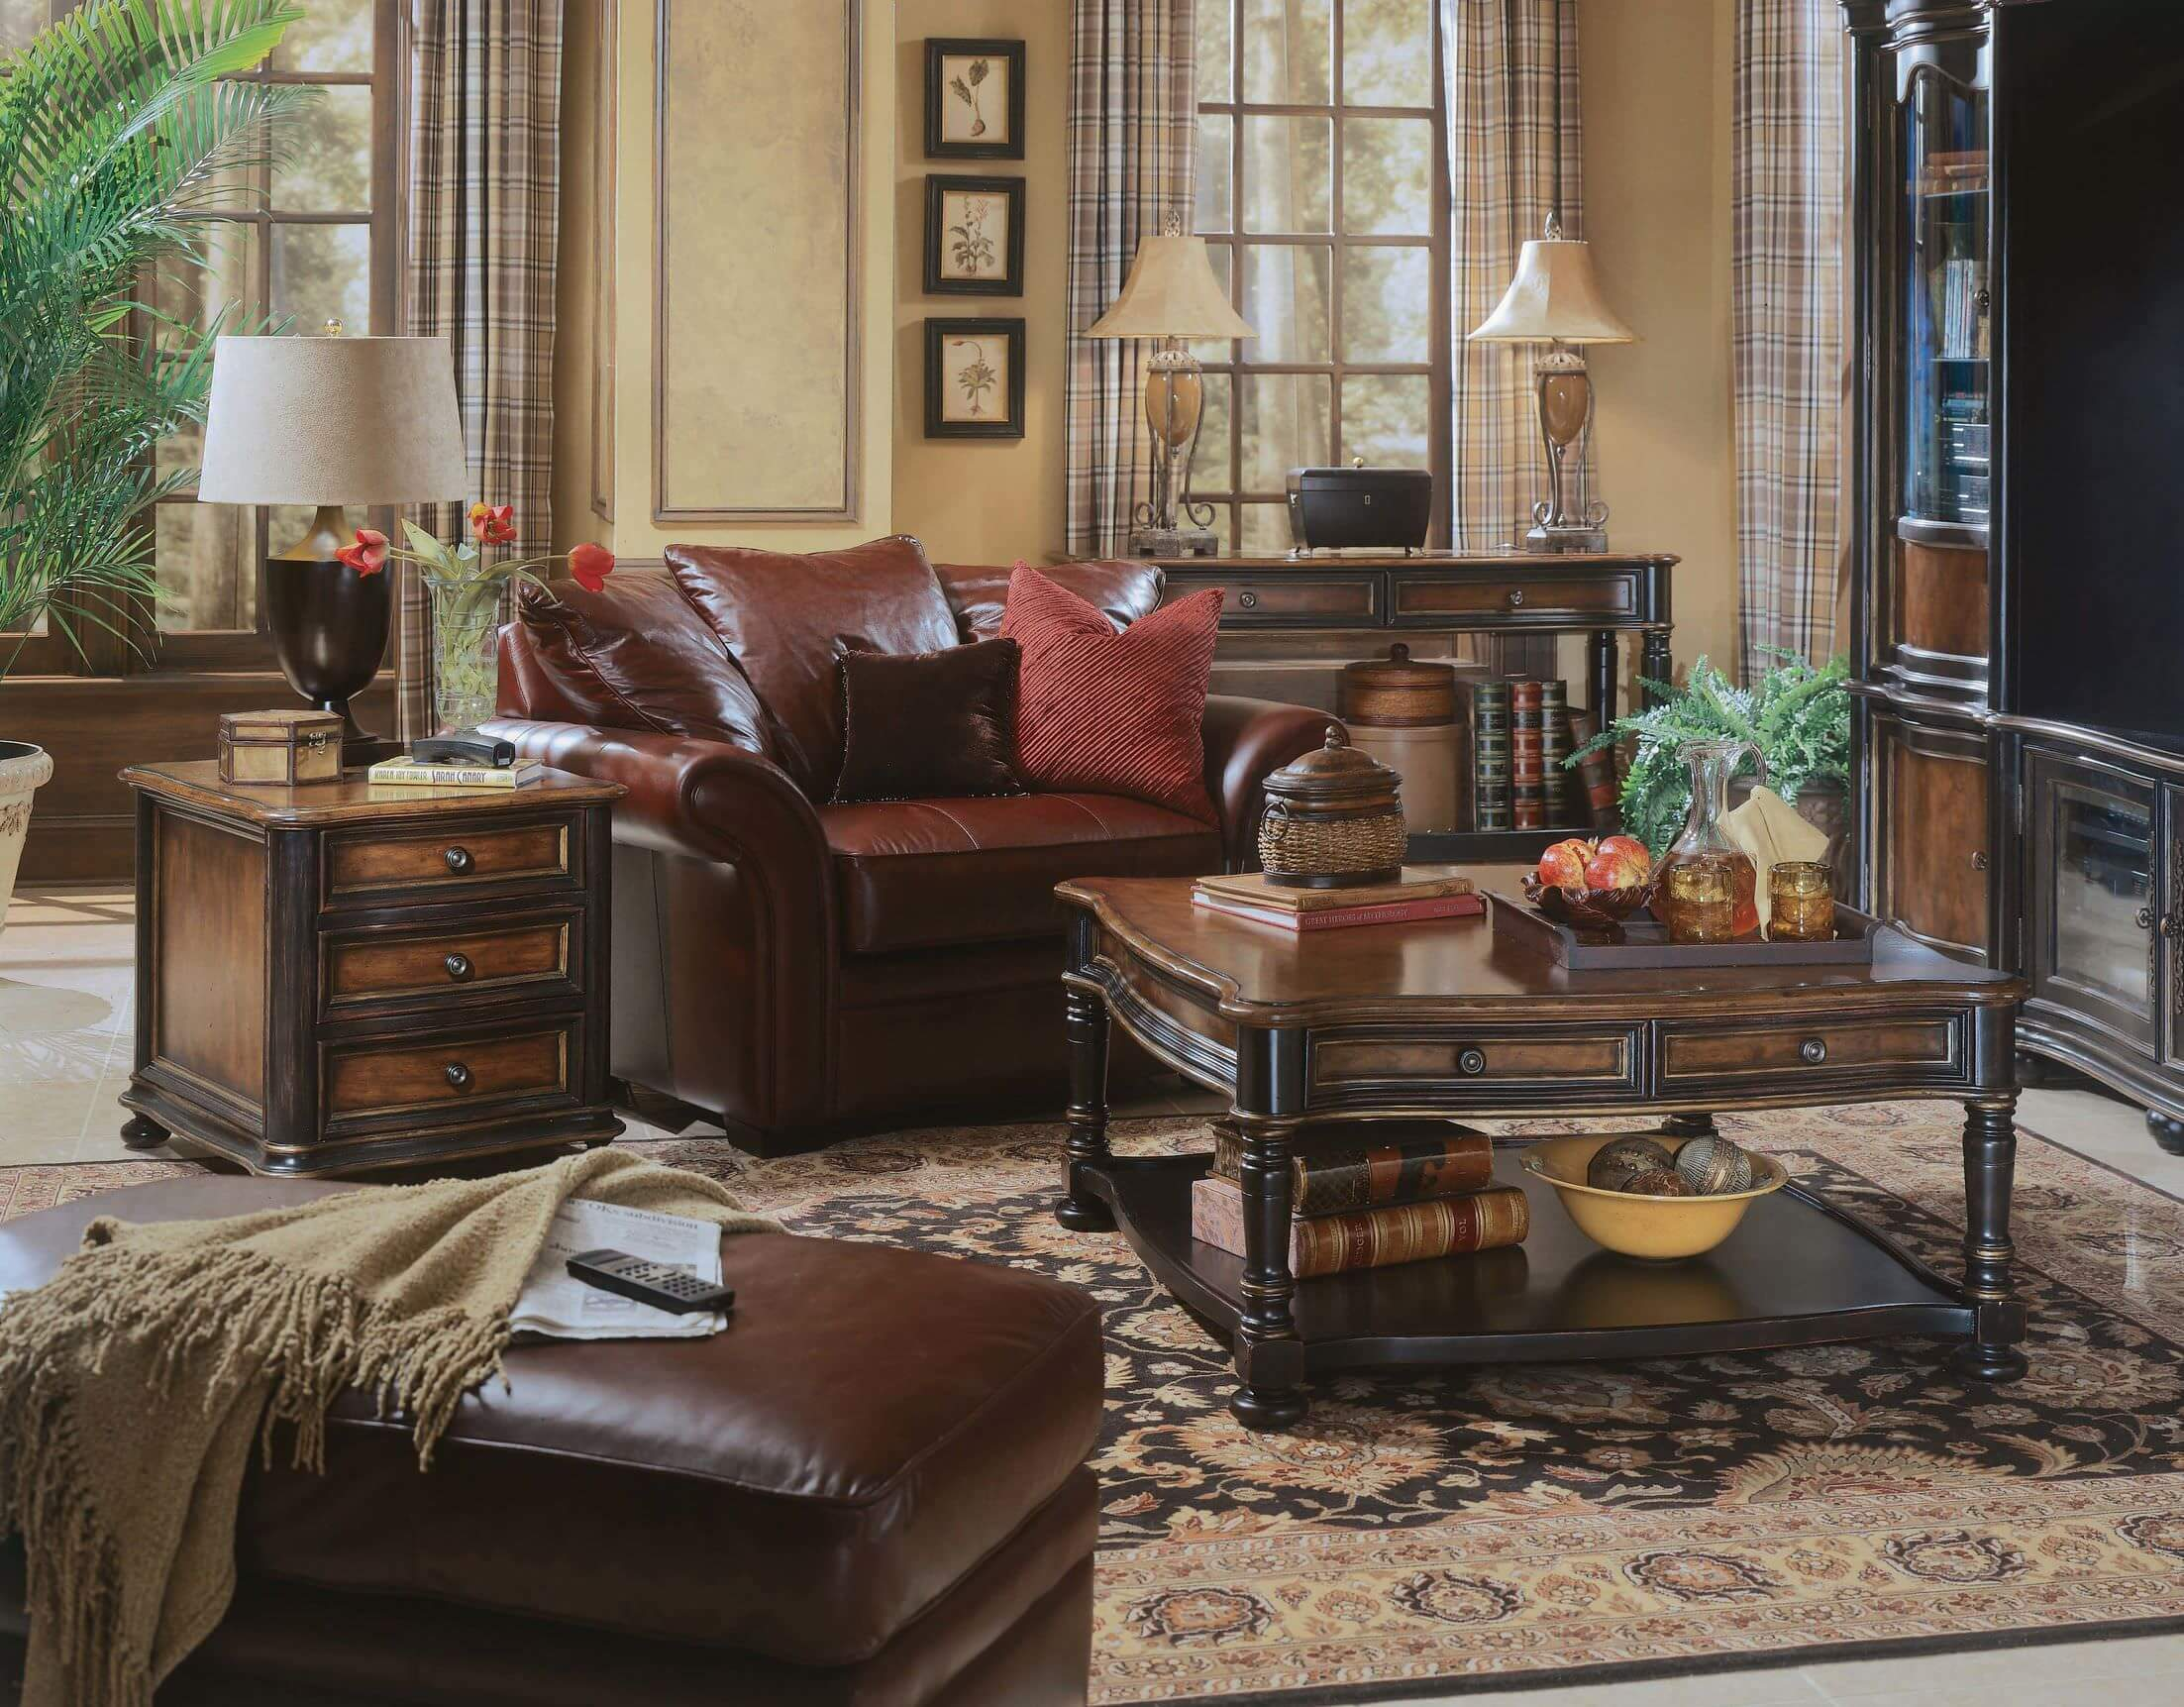 This living room features a wood tone. The room offers cozy seats and a classy area rug.